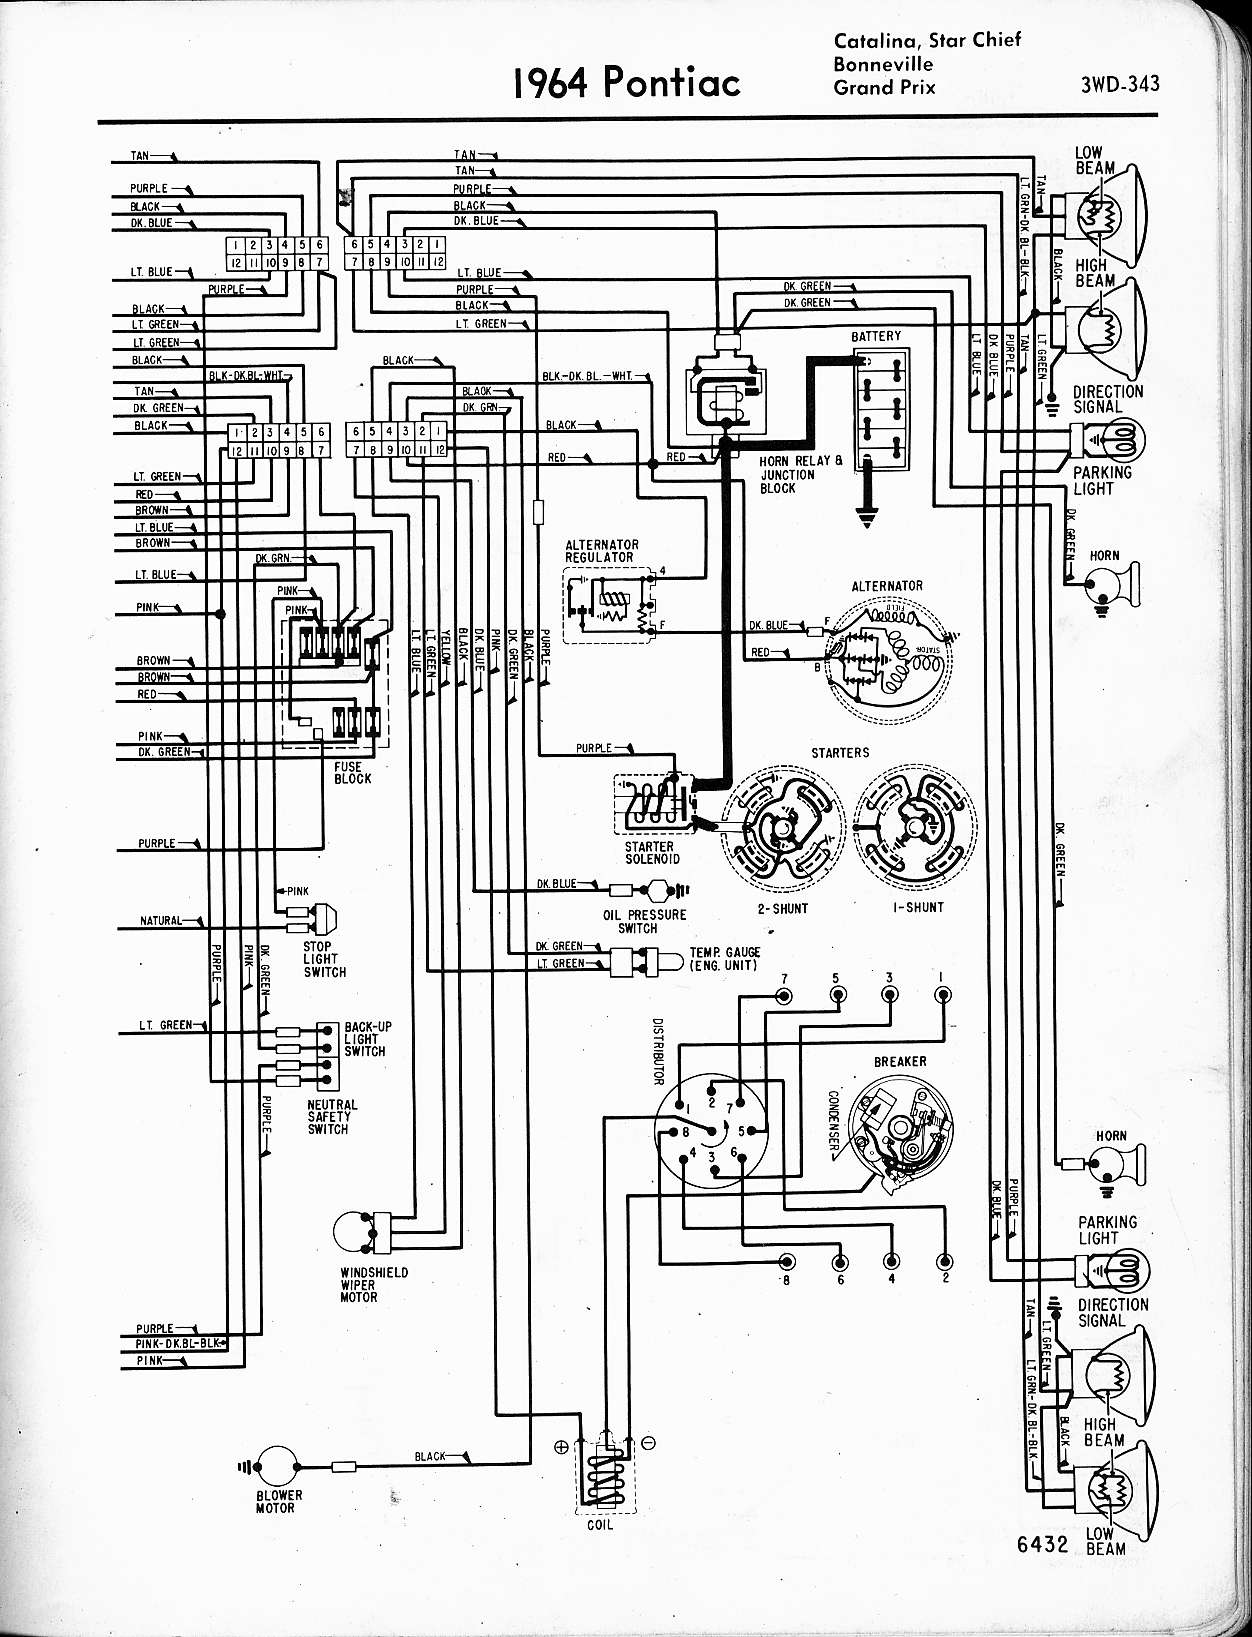 1964 pontiac parisienne wiring diagram 1964 wiring diagrams online 1964 catalina star